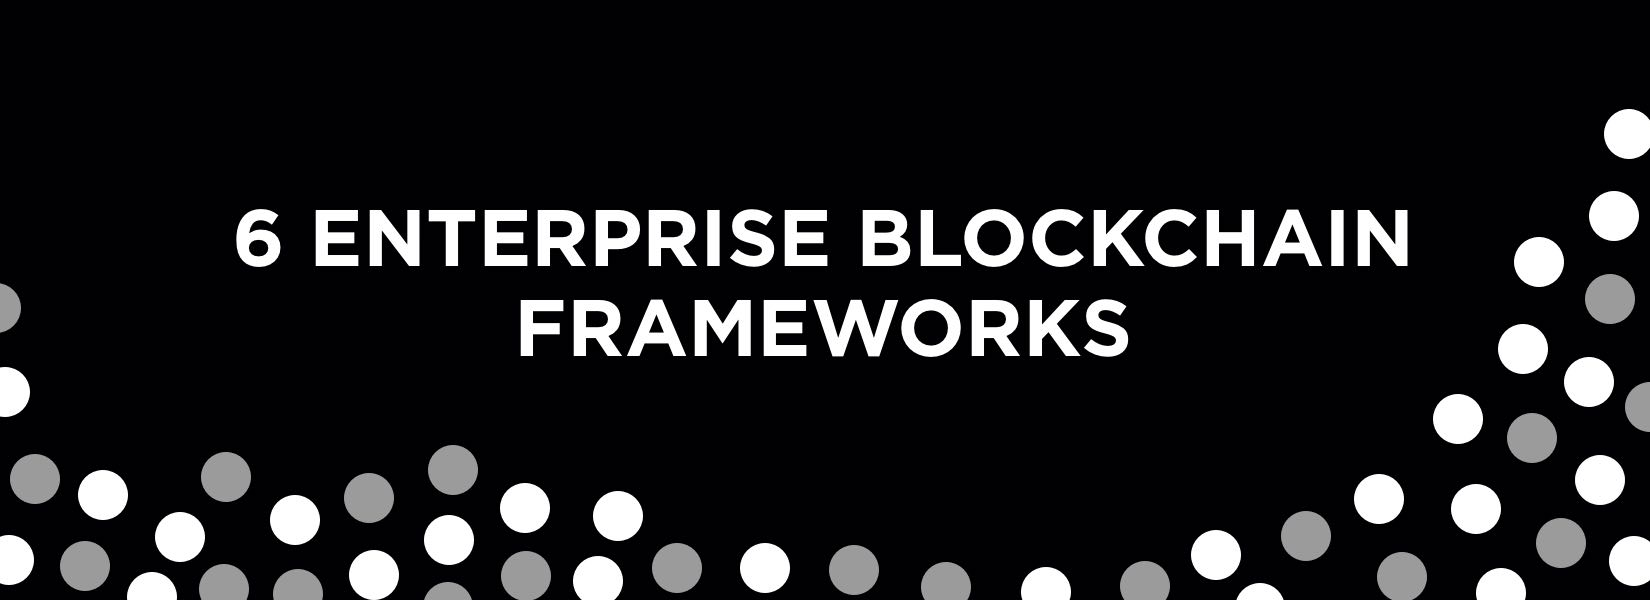 6 Blockchain frameworks to build Enterprise Blockchain & how to choose them?